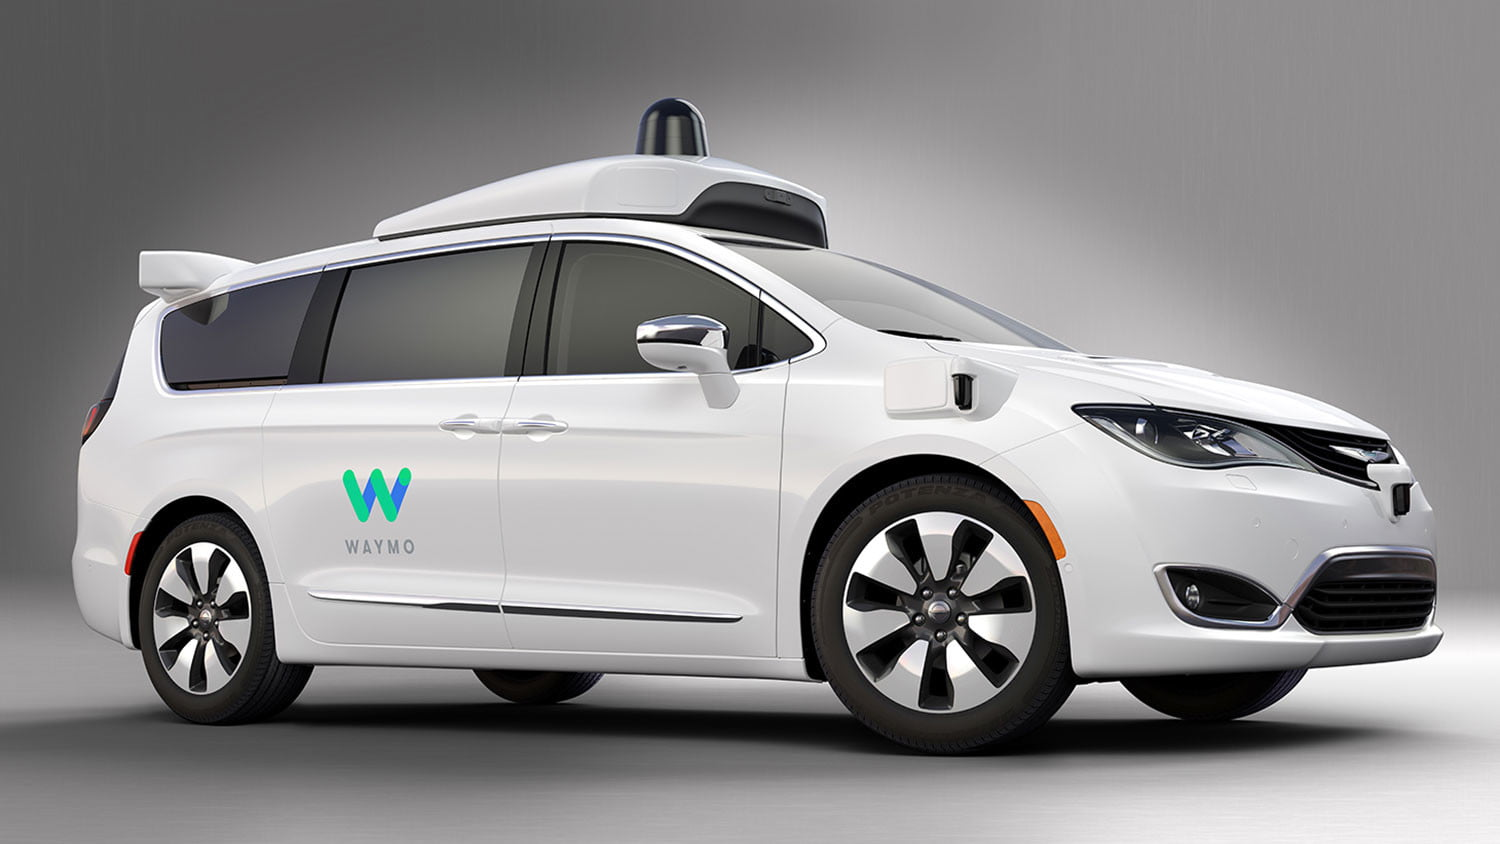 Waymo Gives Rides In Its Fully Self-Driving Cars In Arizona